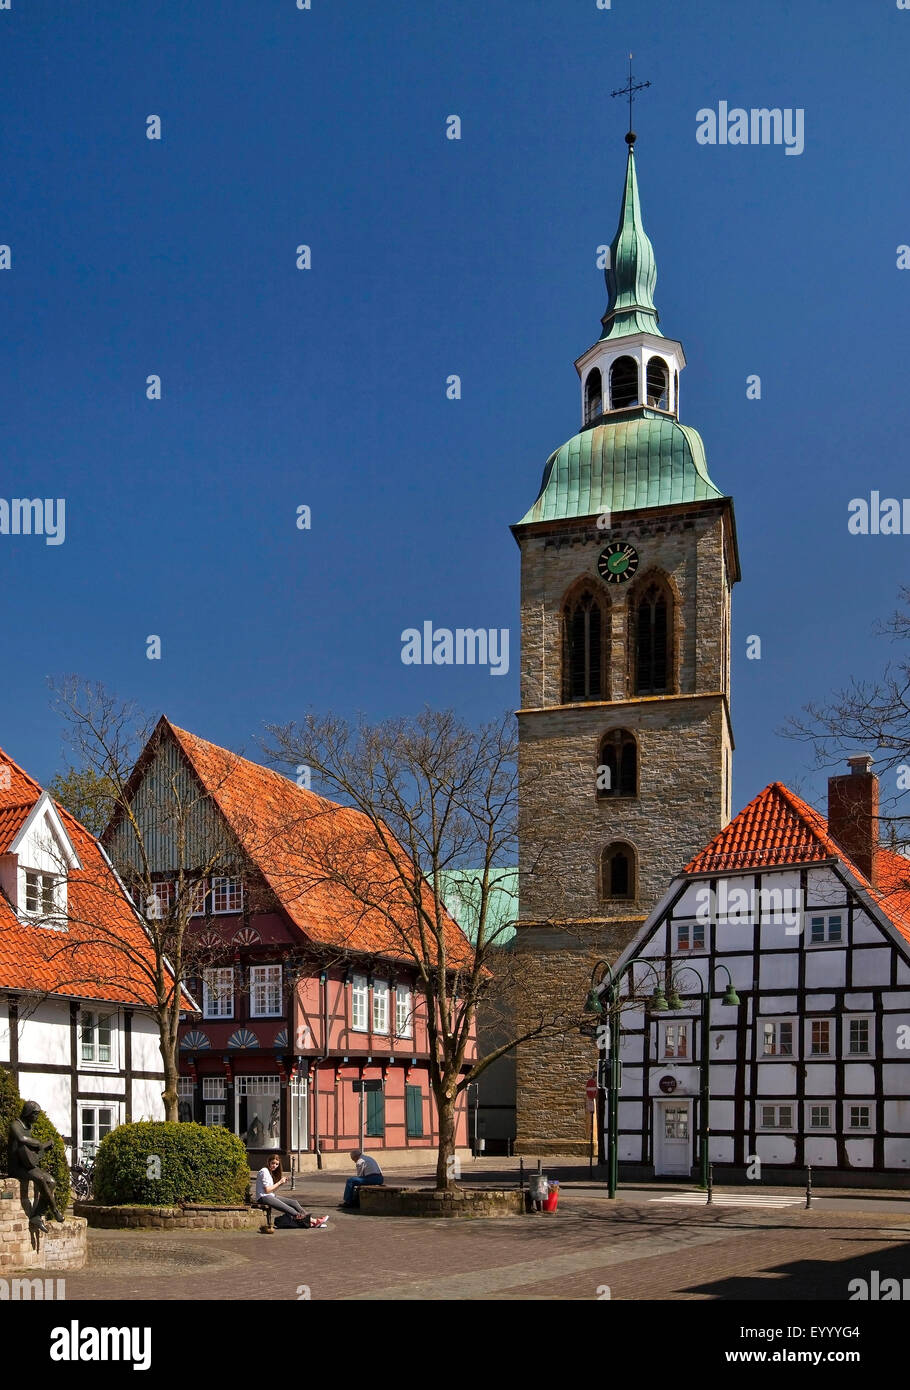 historic old town of Wiedenbrueck with church St. Aegidius, Germany, North Rhine-Westphalia, East Westphalia, Rheda - Stock Image